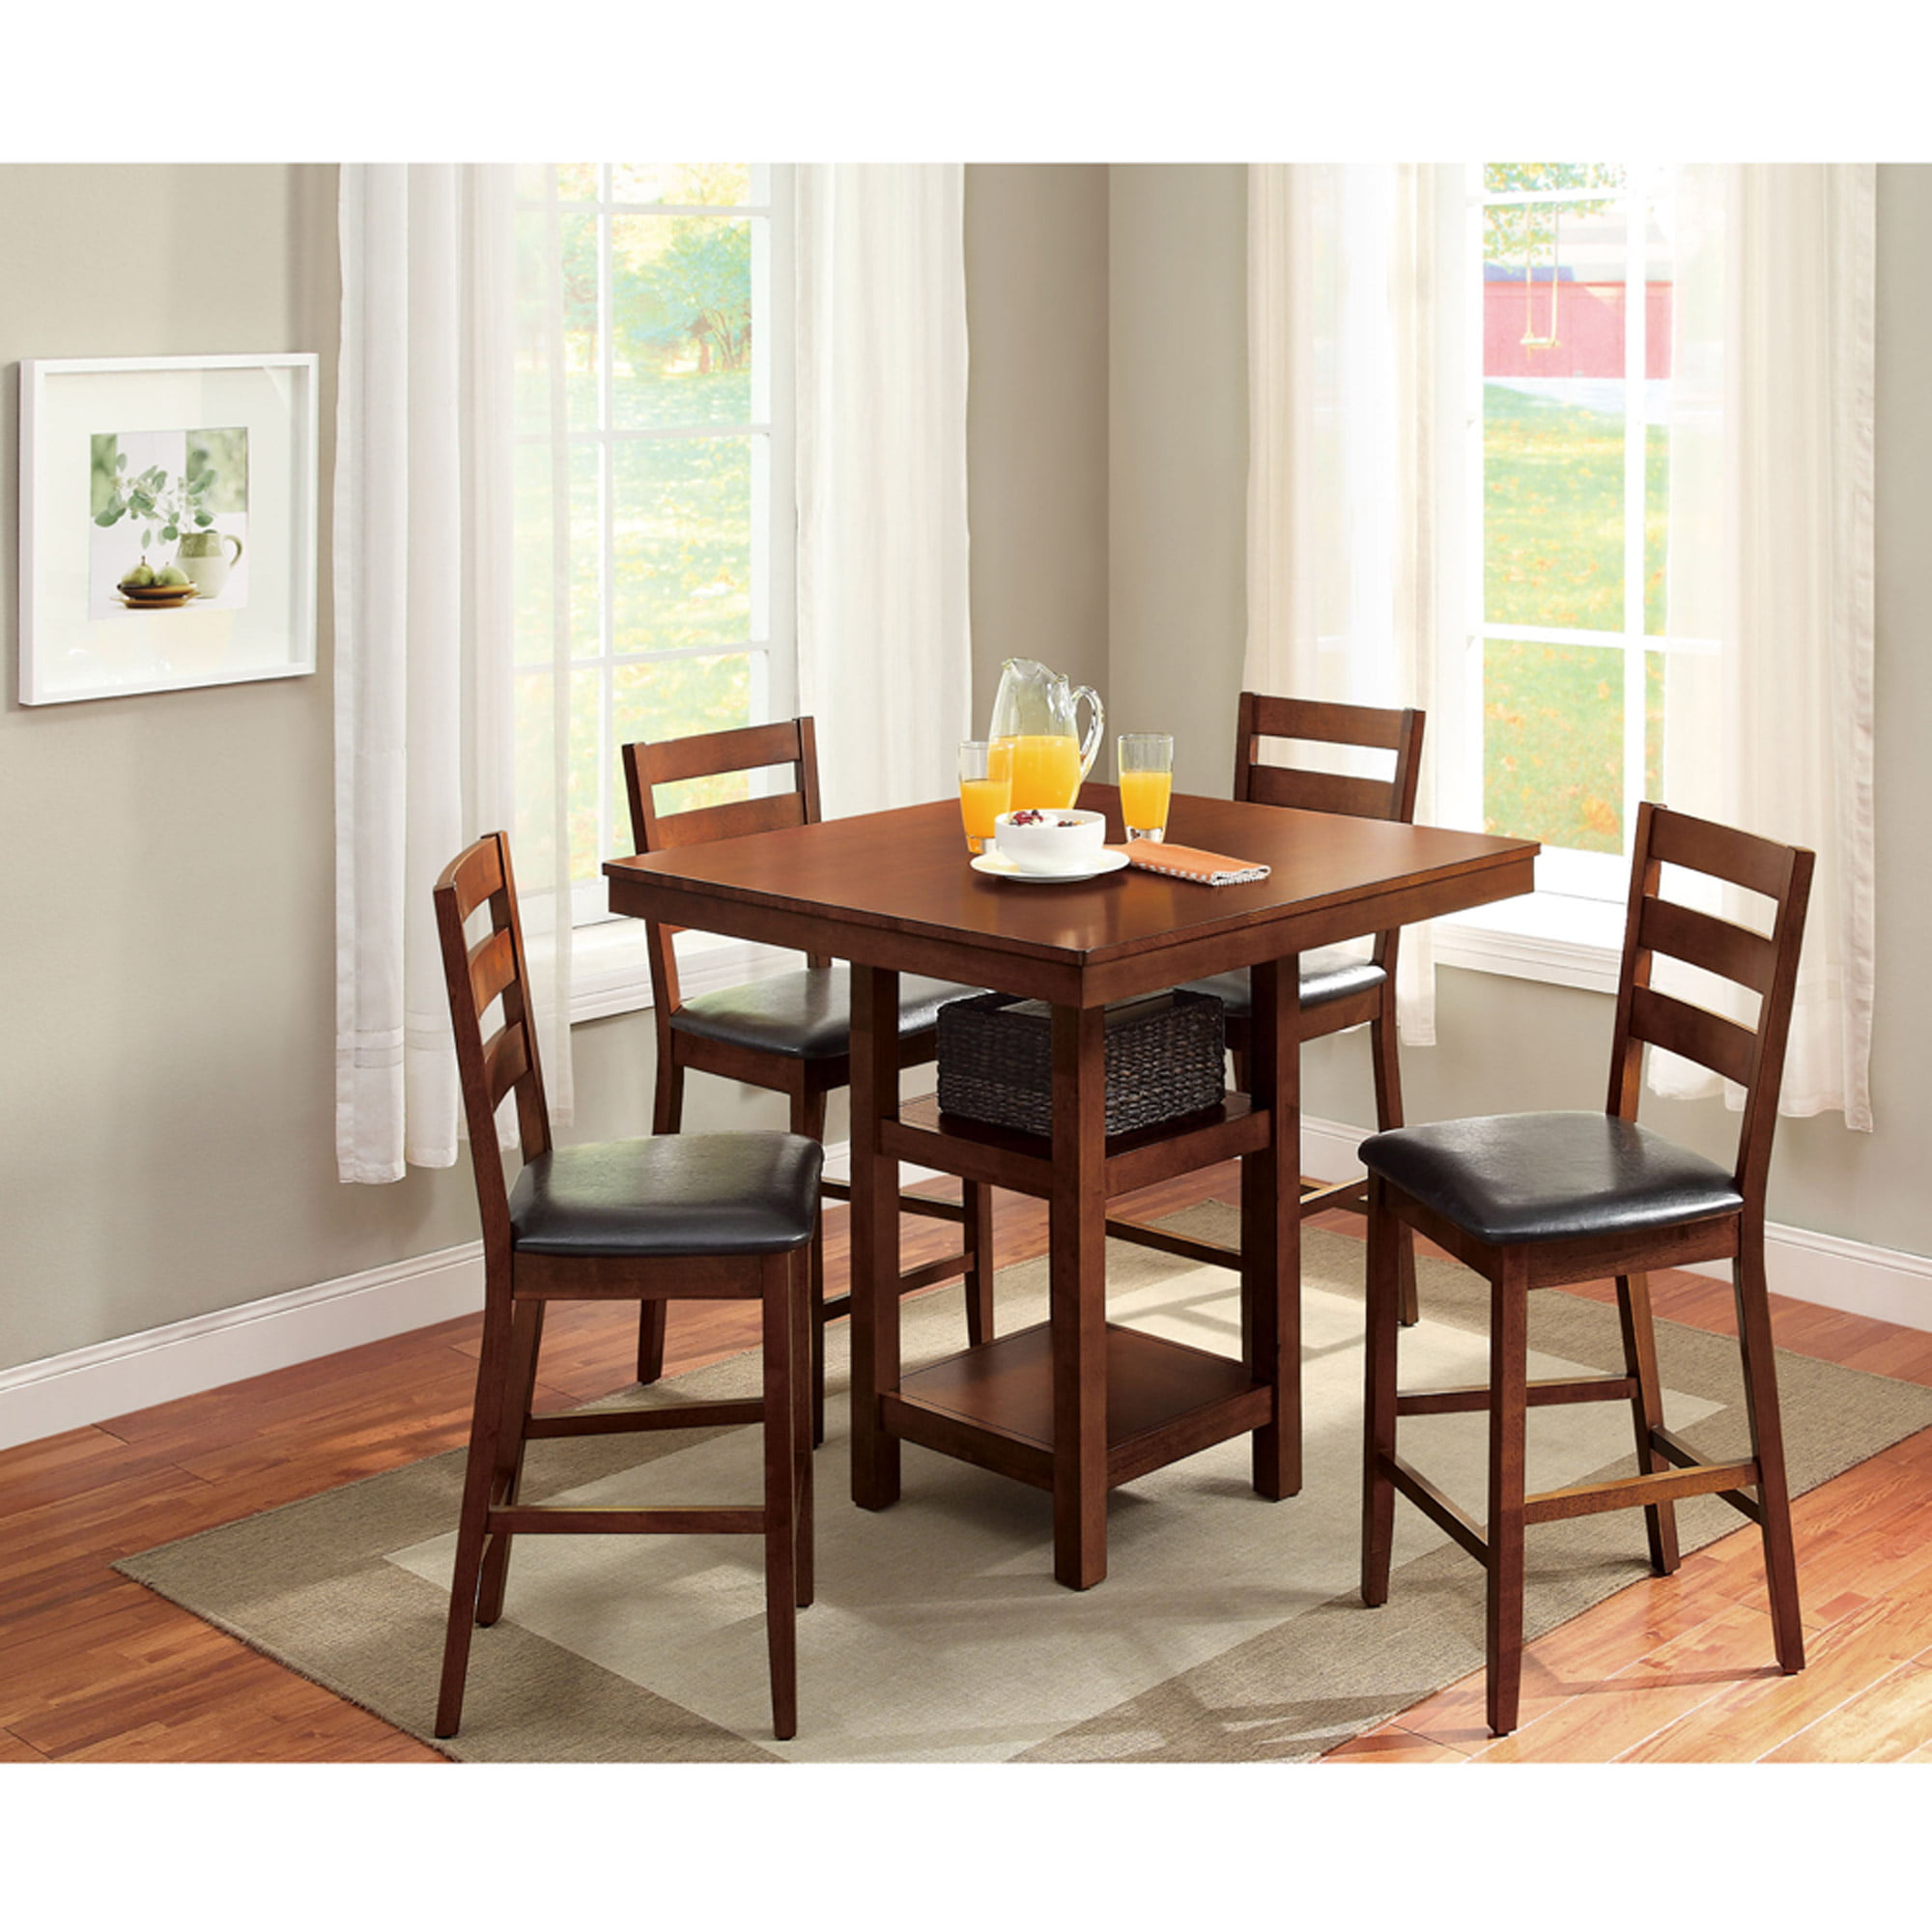 Pictures Of Dinner Tables kitchen & dining furniture - walmart